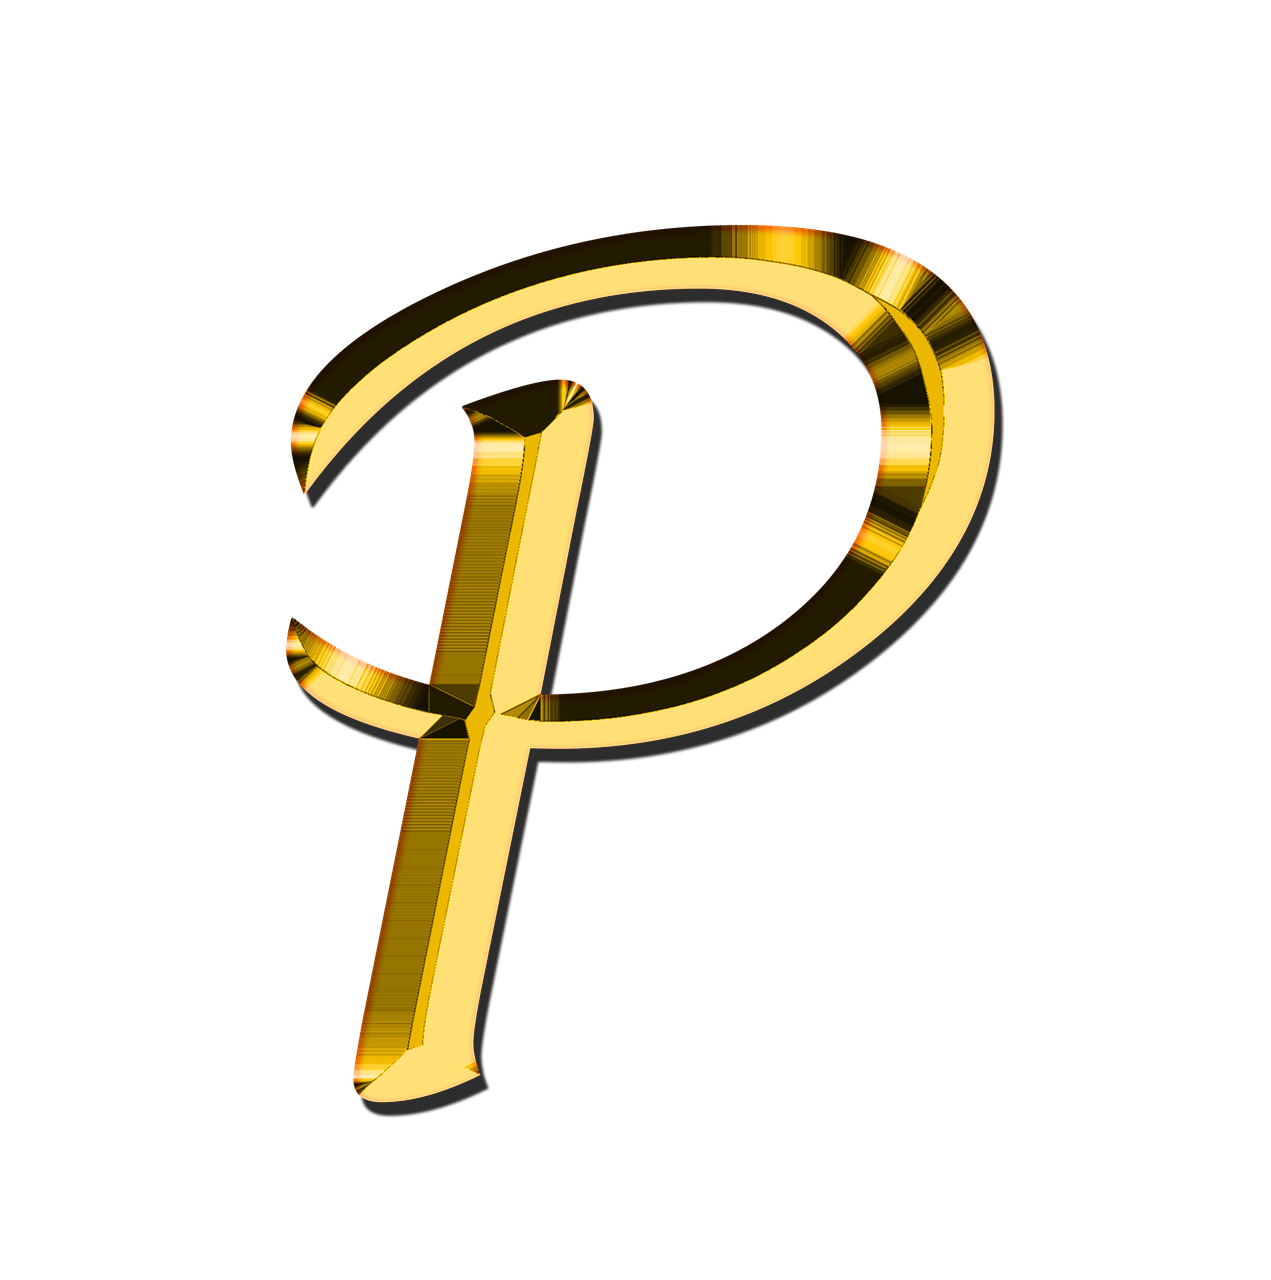 P transparent. Capital letter png stickpng